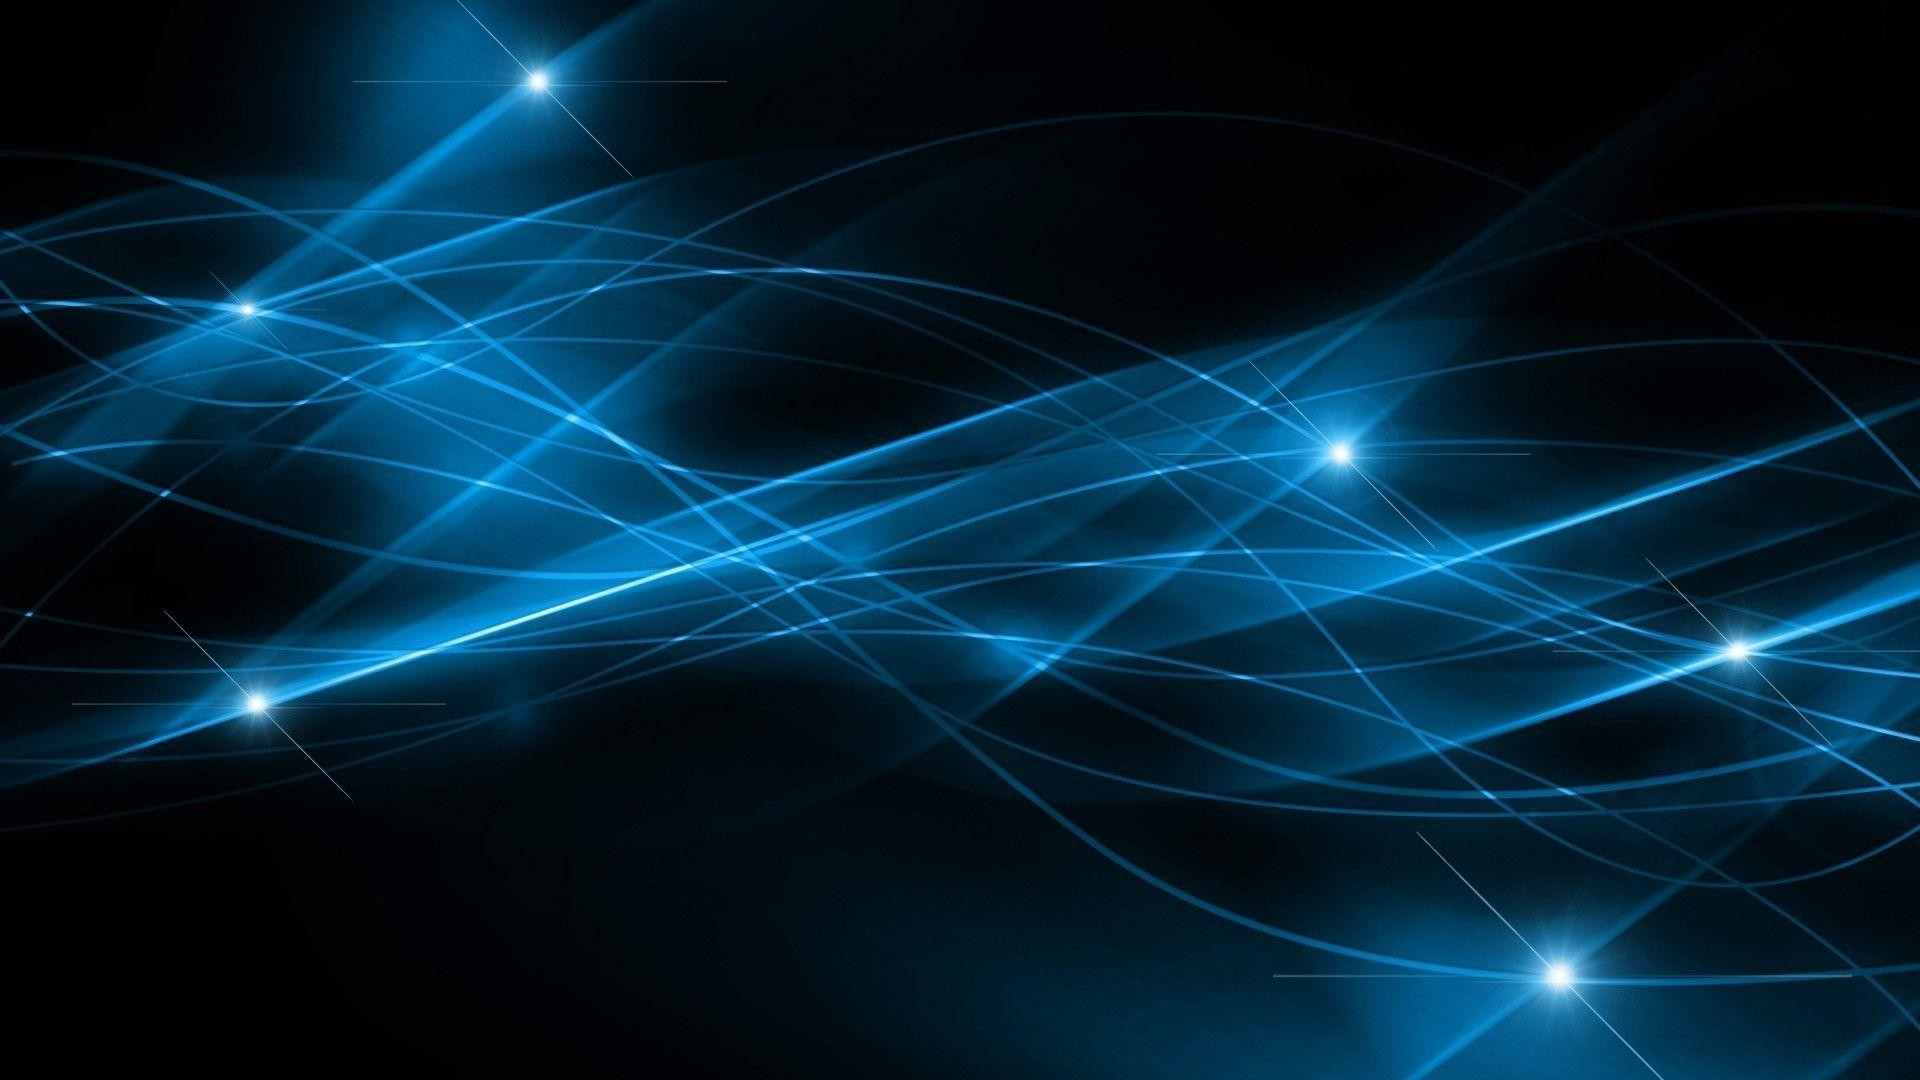 1920x1080 Black And Blue Abstract Backgrounds Hd Background 9 HD Wallpapers .